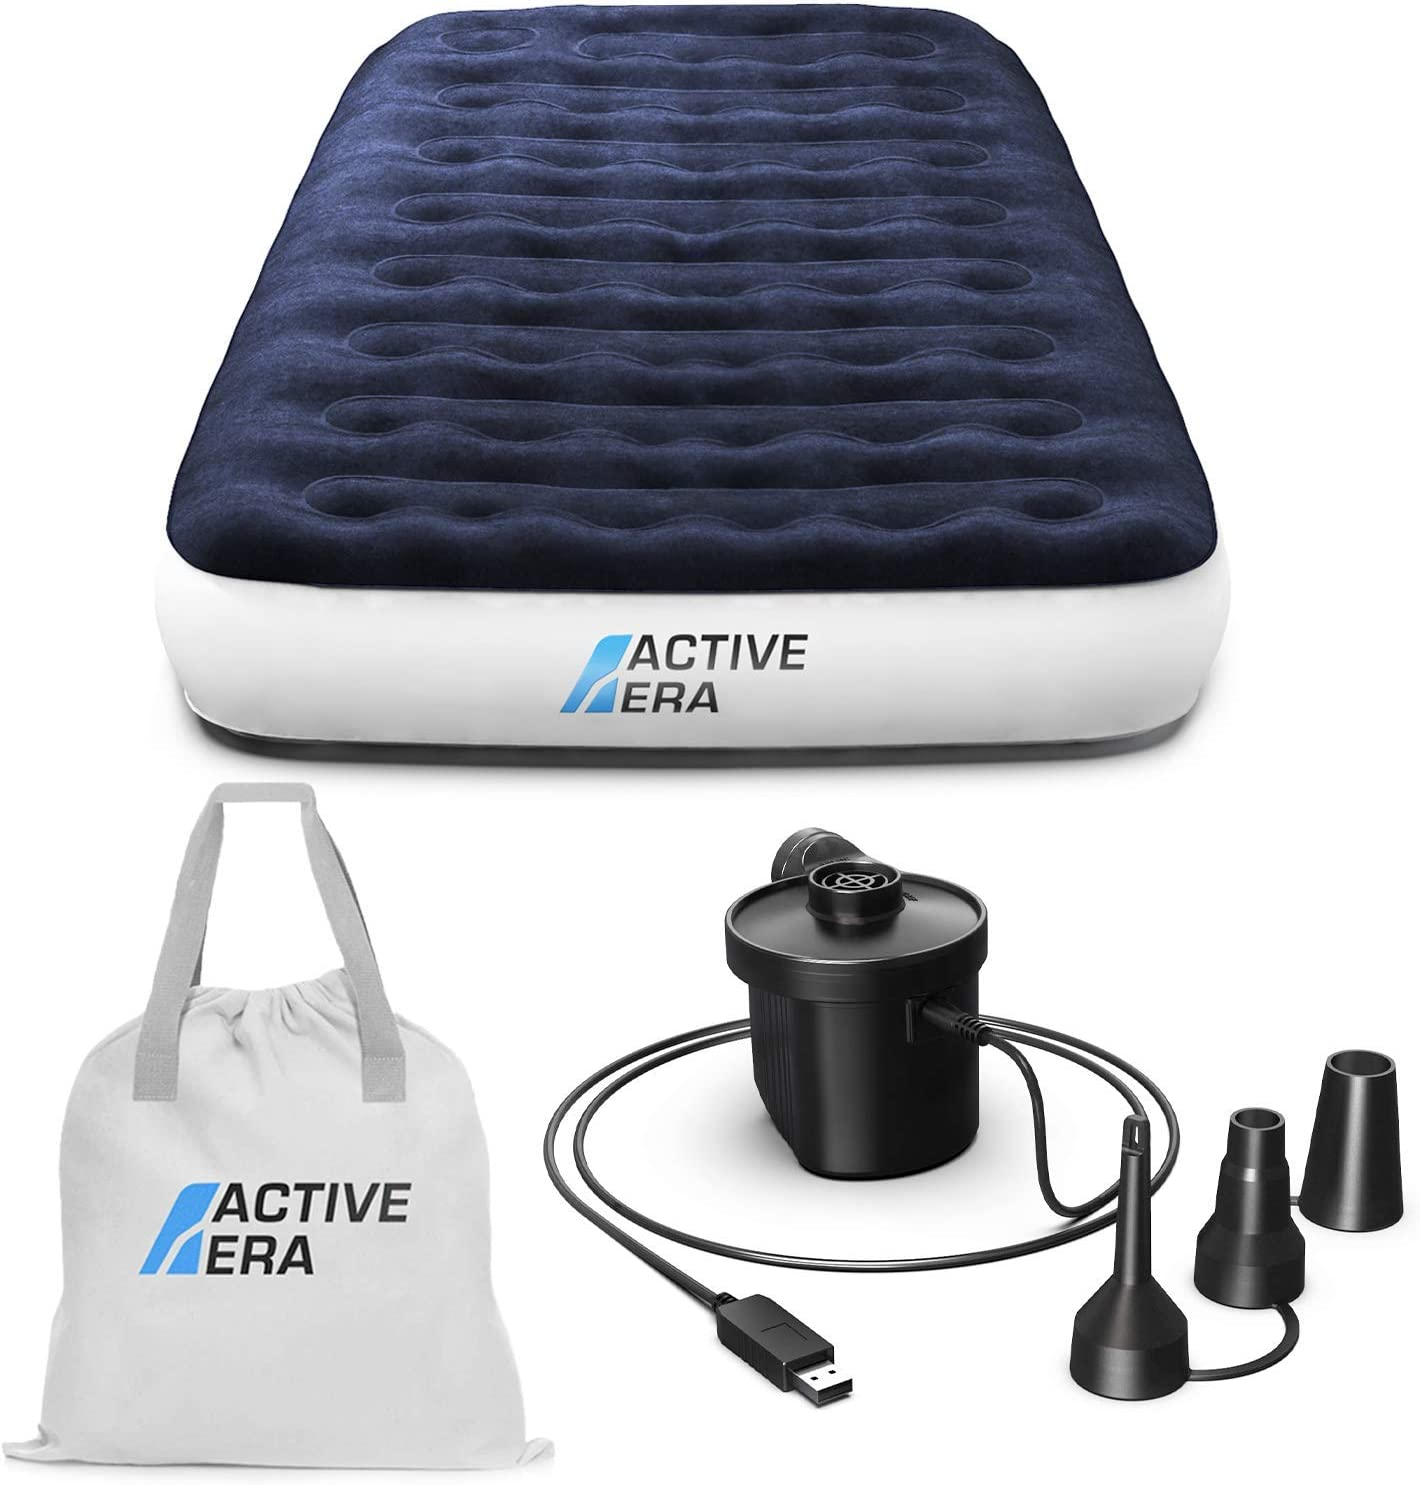 Active Era Luxury Camping Air Mattress Built Special price for a limited time Pump with Twin cheap - in